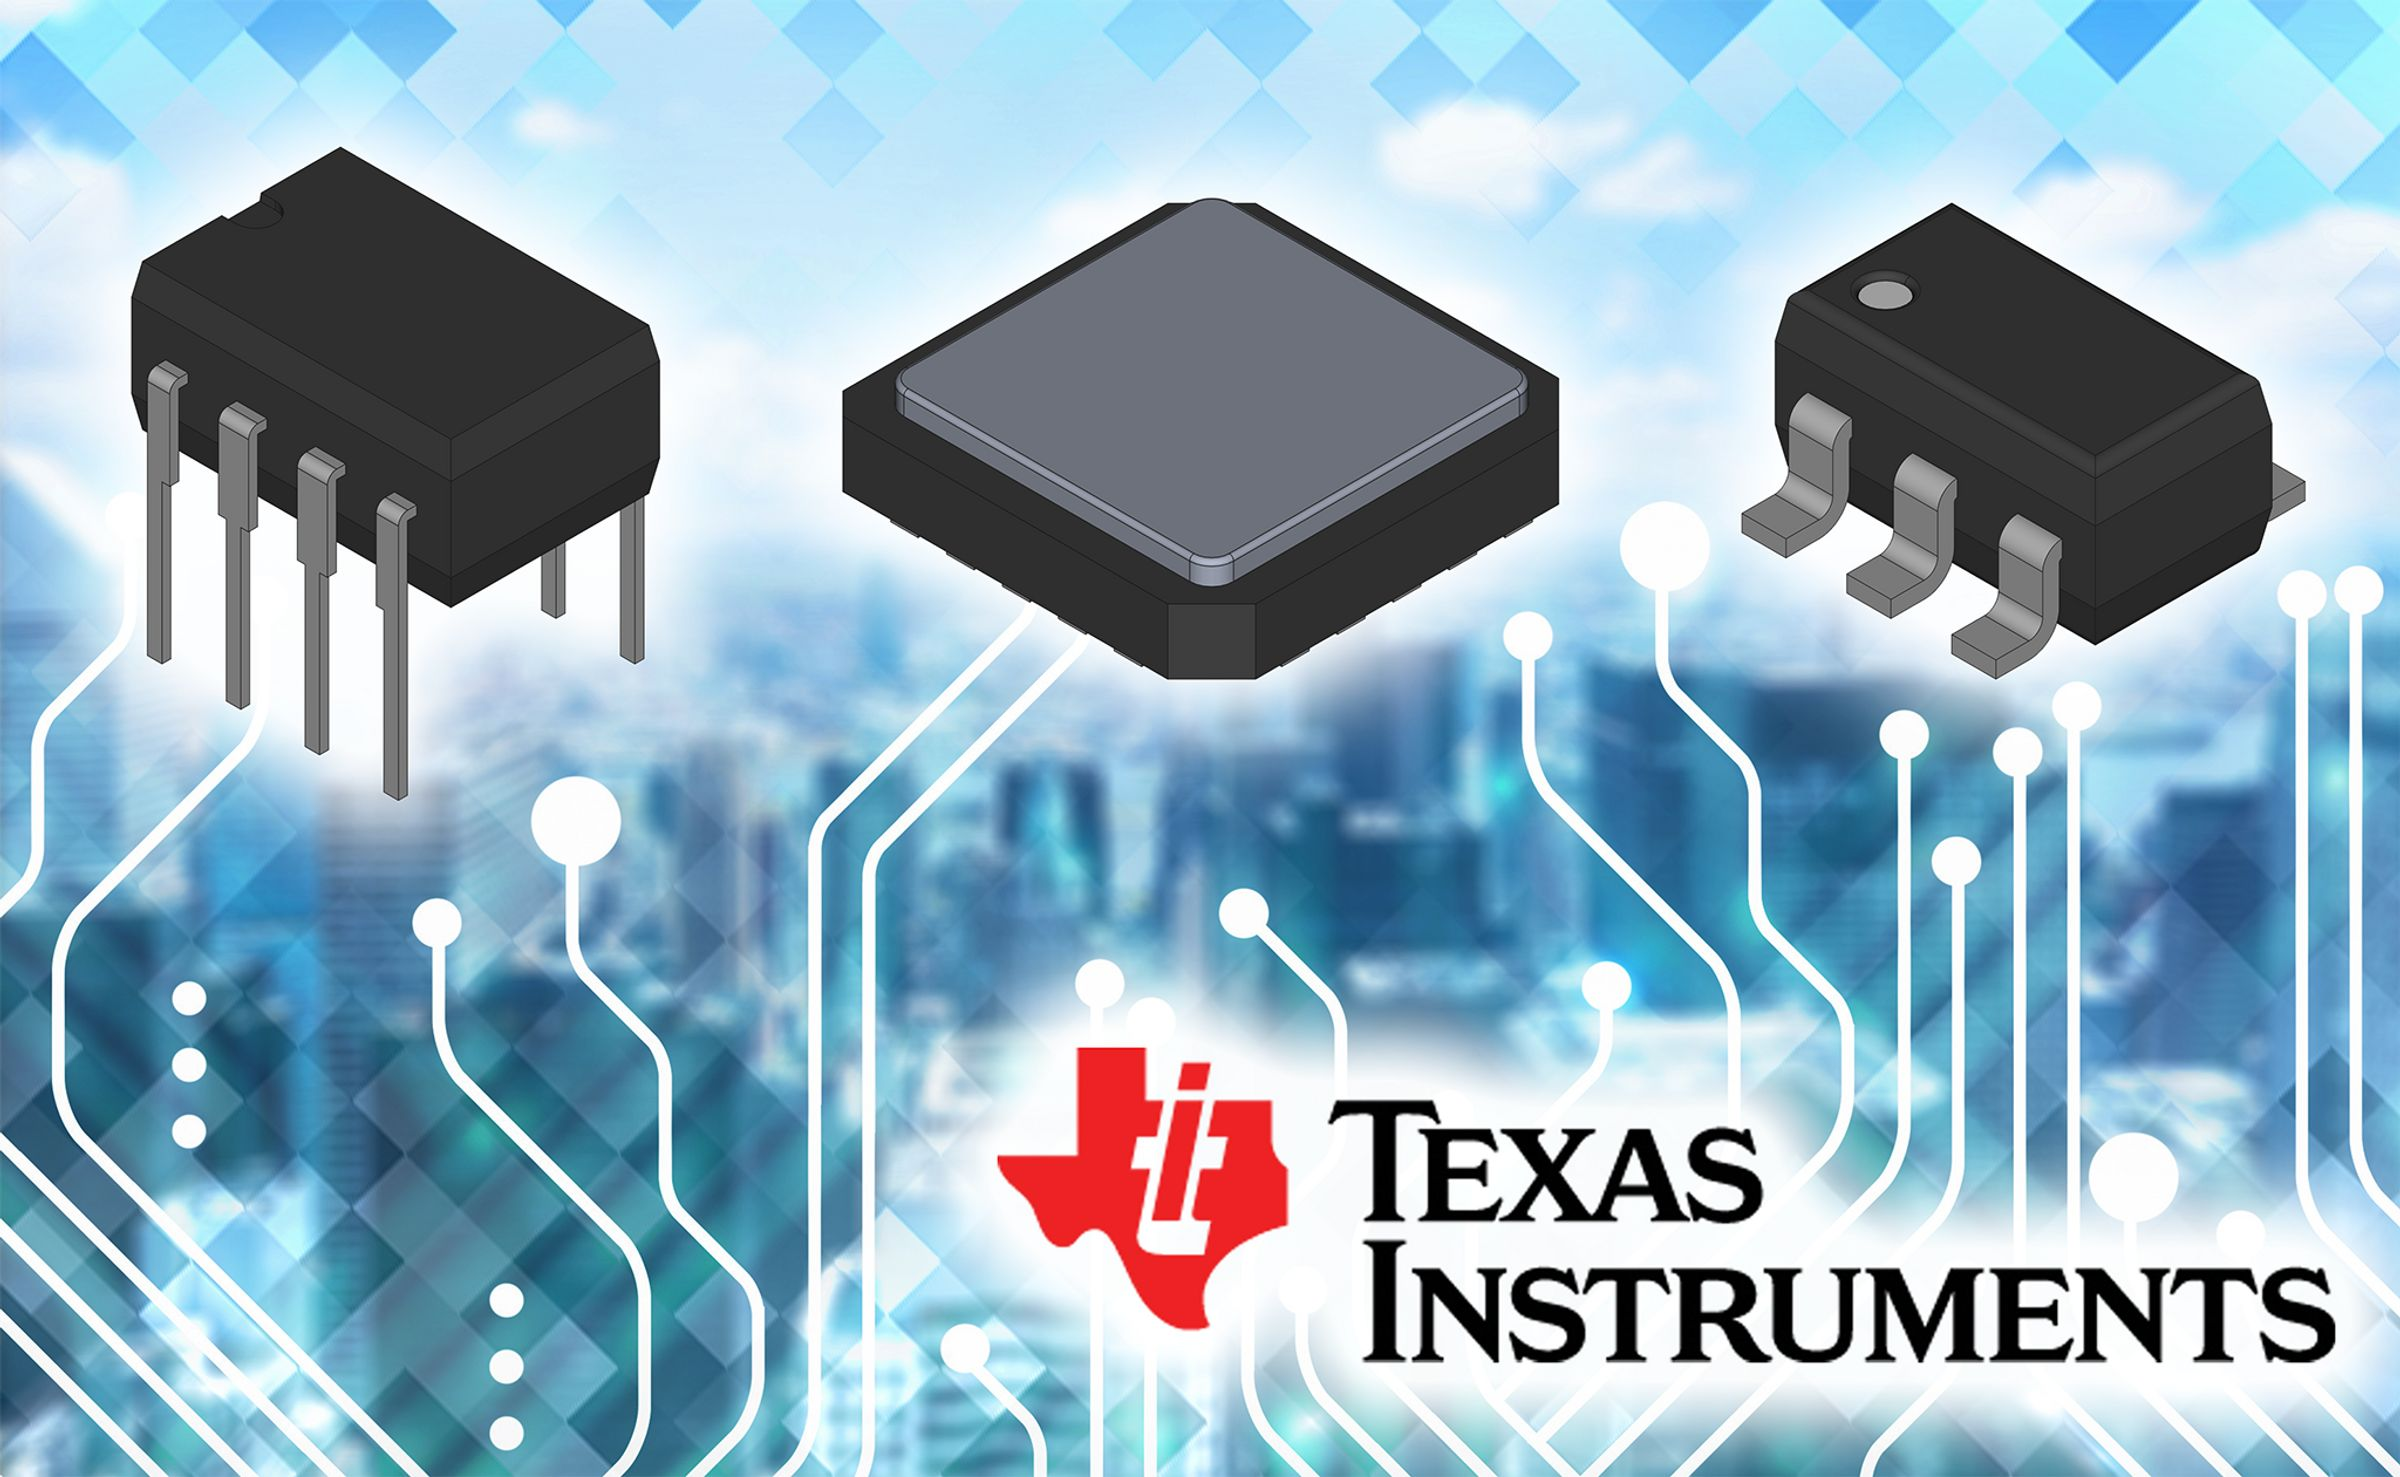 Texas Instruments gen announcement Email_AUG19